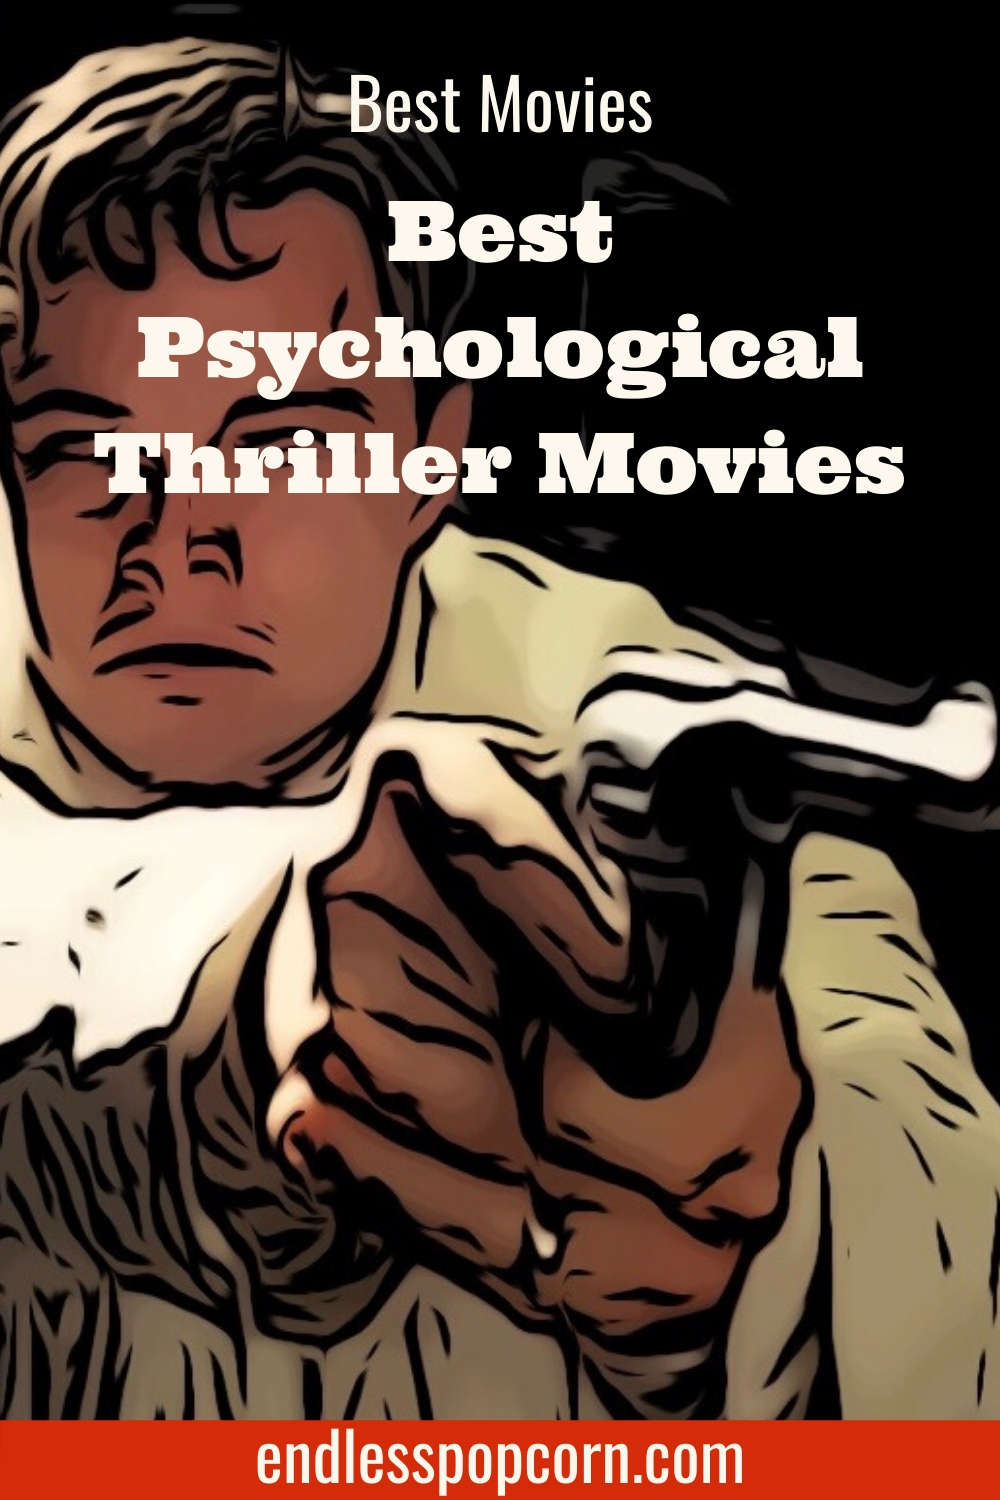 Best Psychological Movies in 2020 Psychological thriller